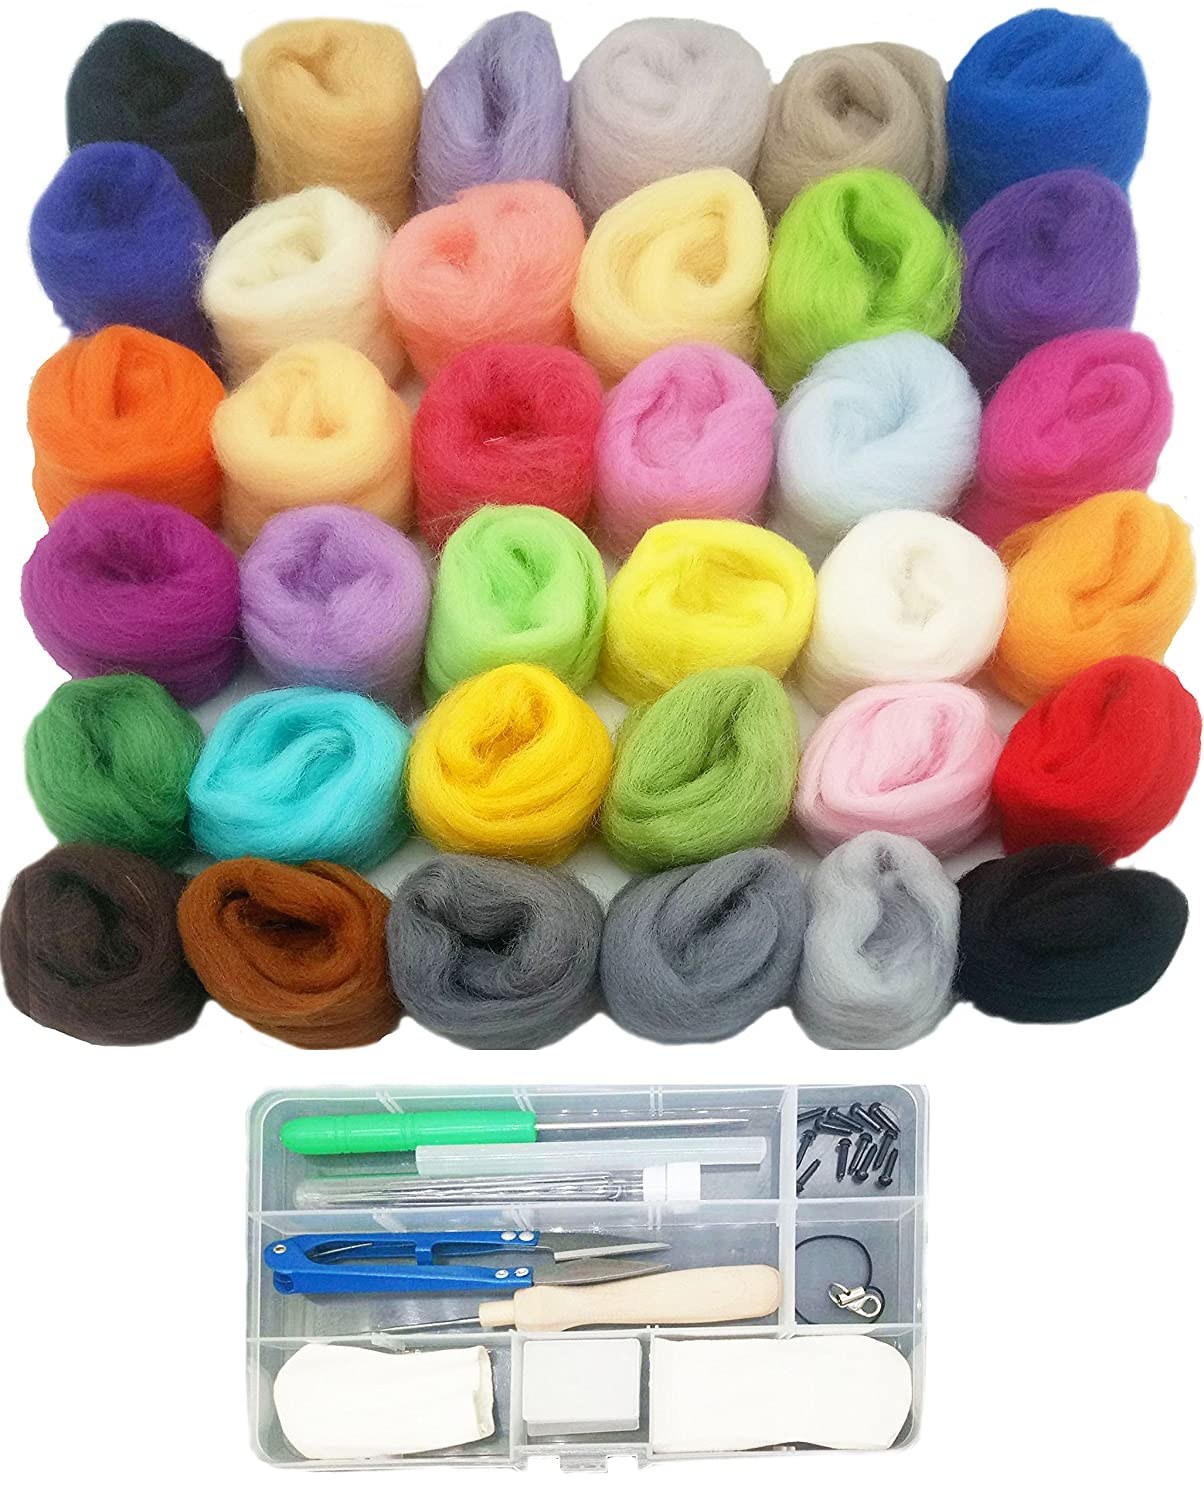 Felting Wool, Misscrafts 36 Colors Wool Roving Fibre Needle Felting Supplies with Felting Tool Kit for DIY Felting Craft 4336906807